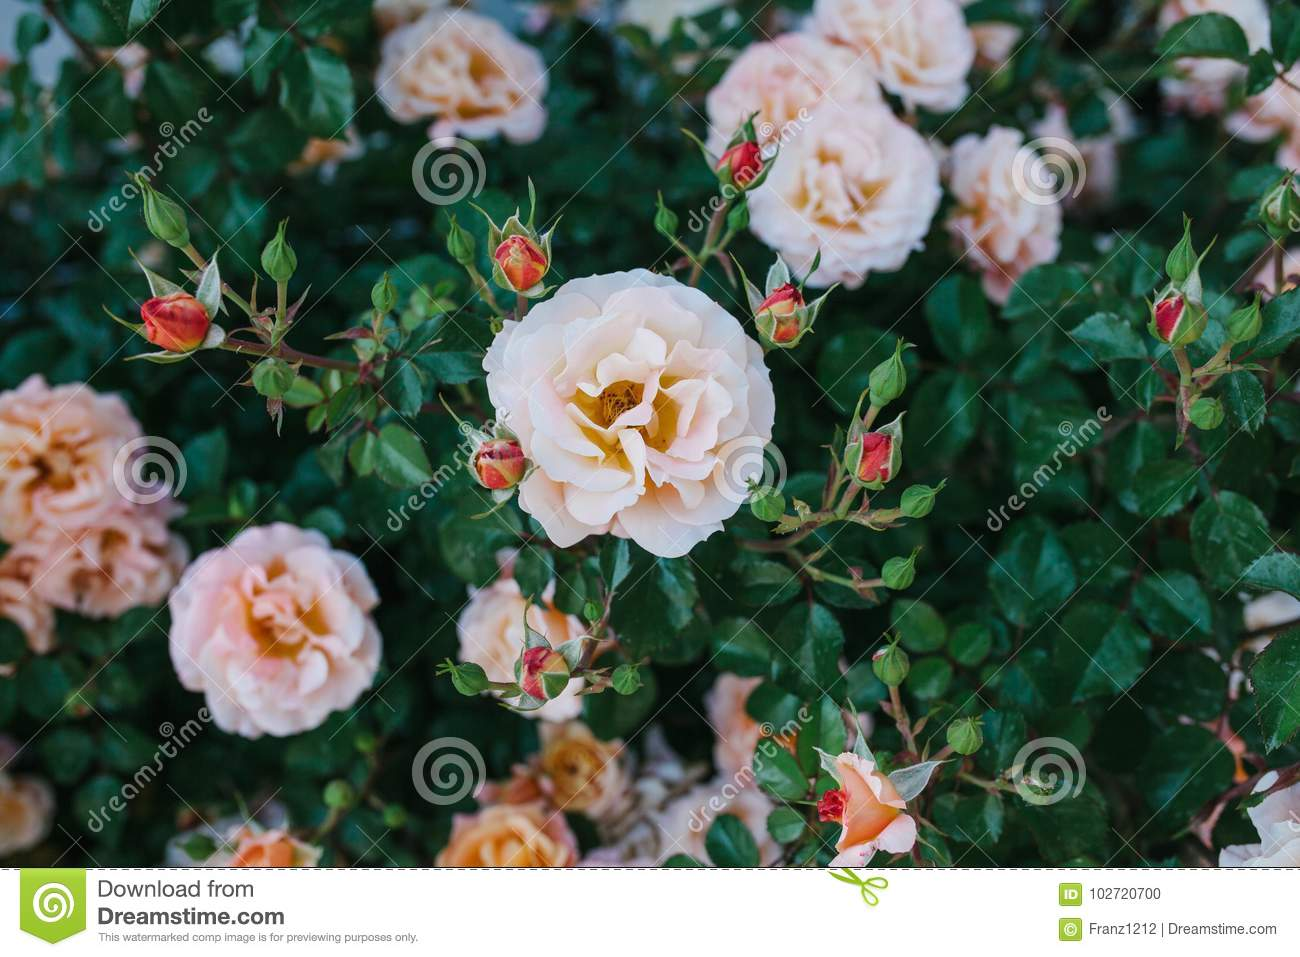 Lot Of Lovely Pink Flowers Of Dogrose On The Background Of Green